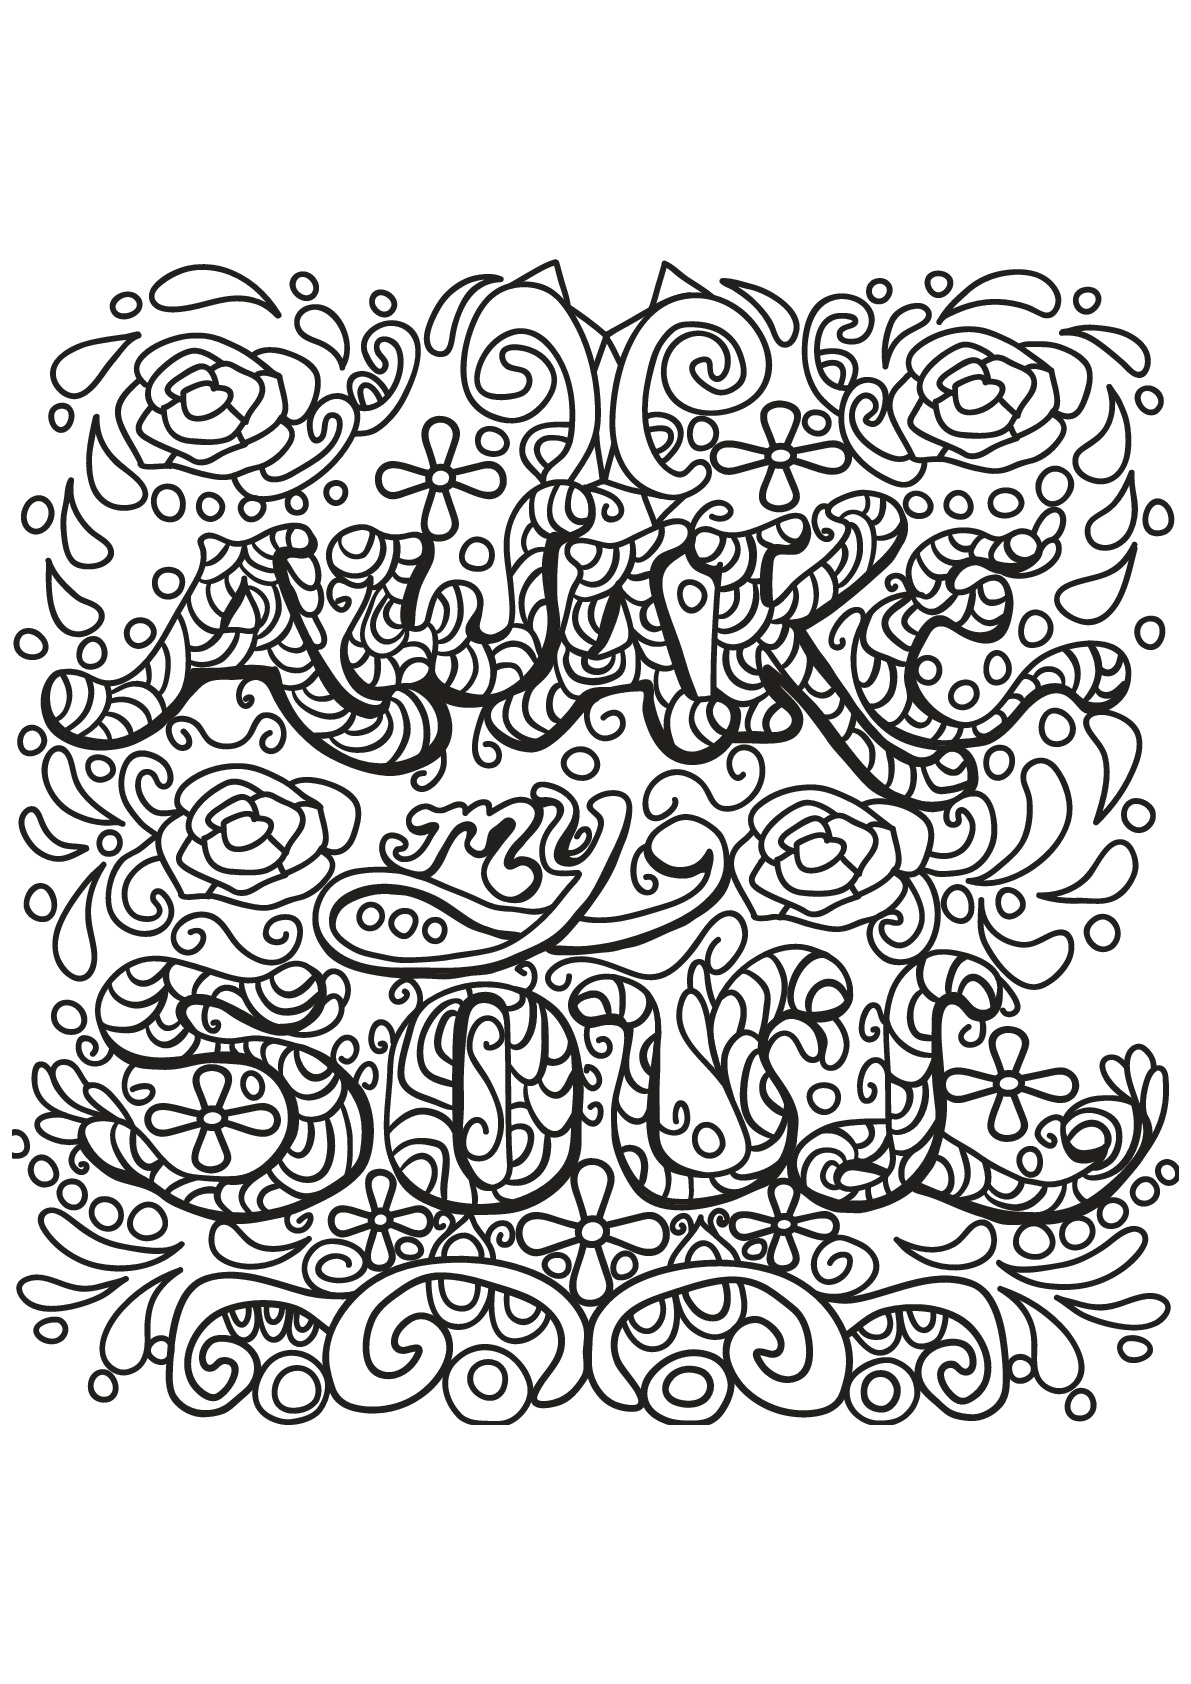 12 Inspiring Quote Coloring Pages For AdultsFree Printables Craft